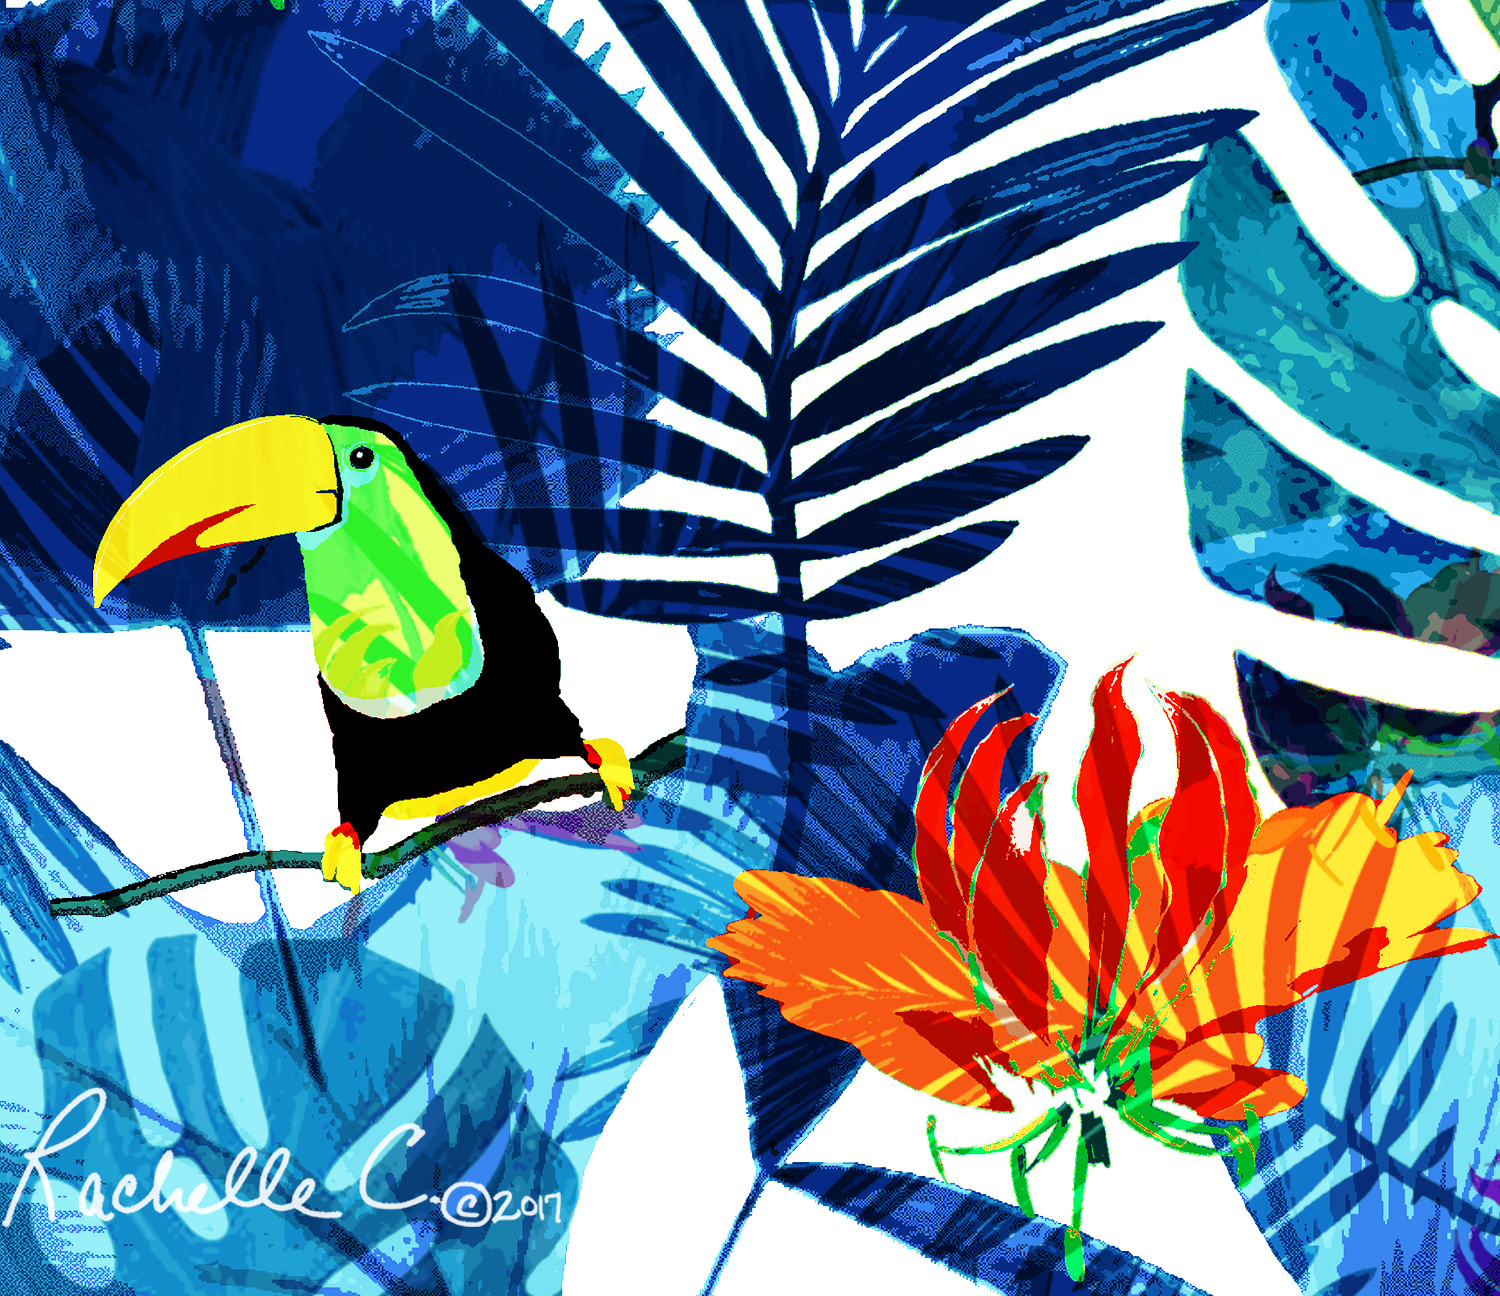 """Toucan Isle"" original print, Rachelle Caliolio Design  copyright 2019. All rights reserved."